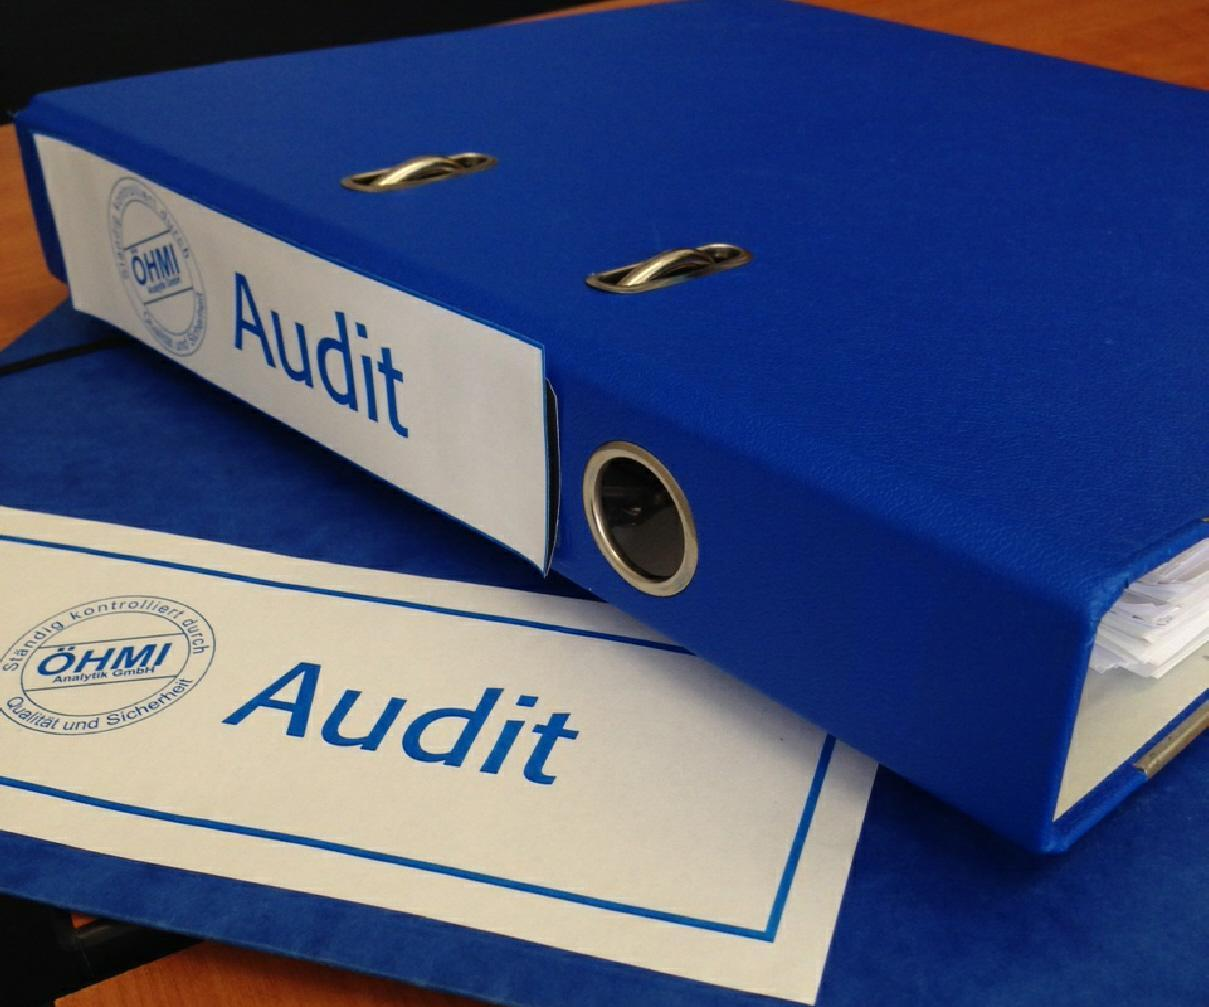 Audit klein